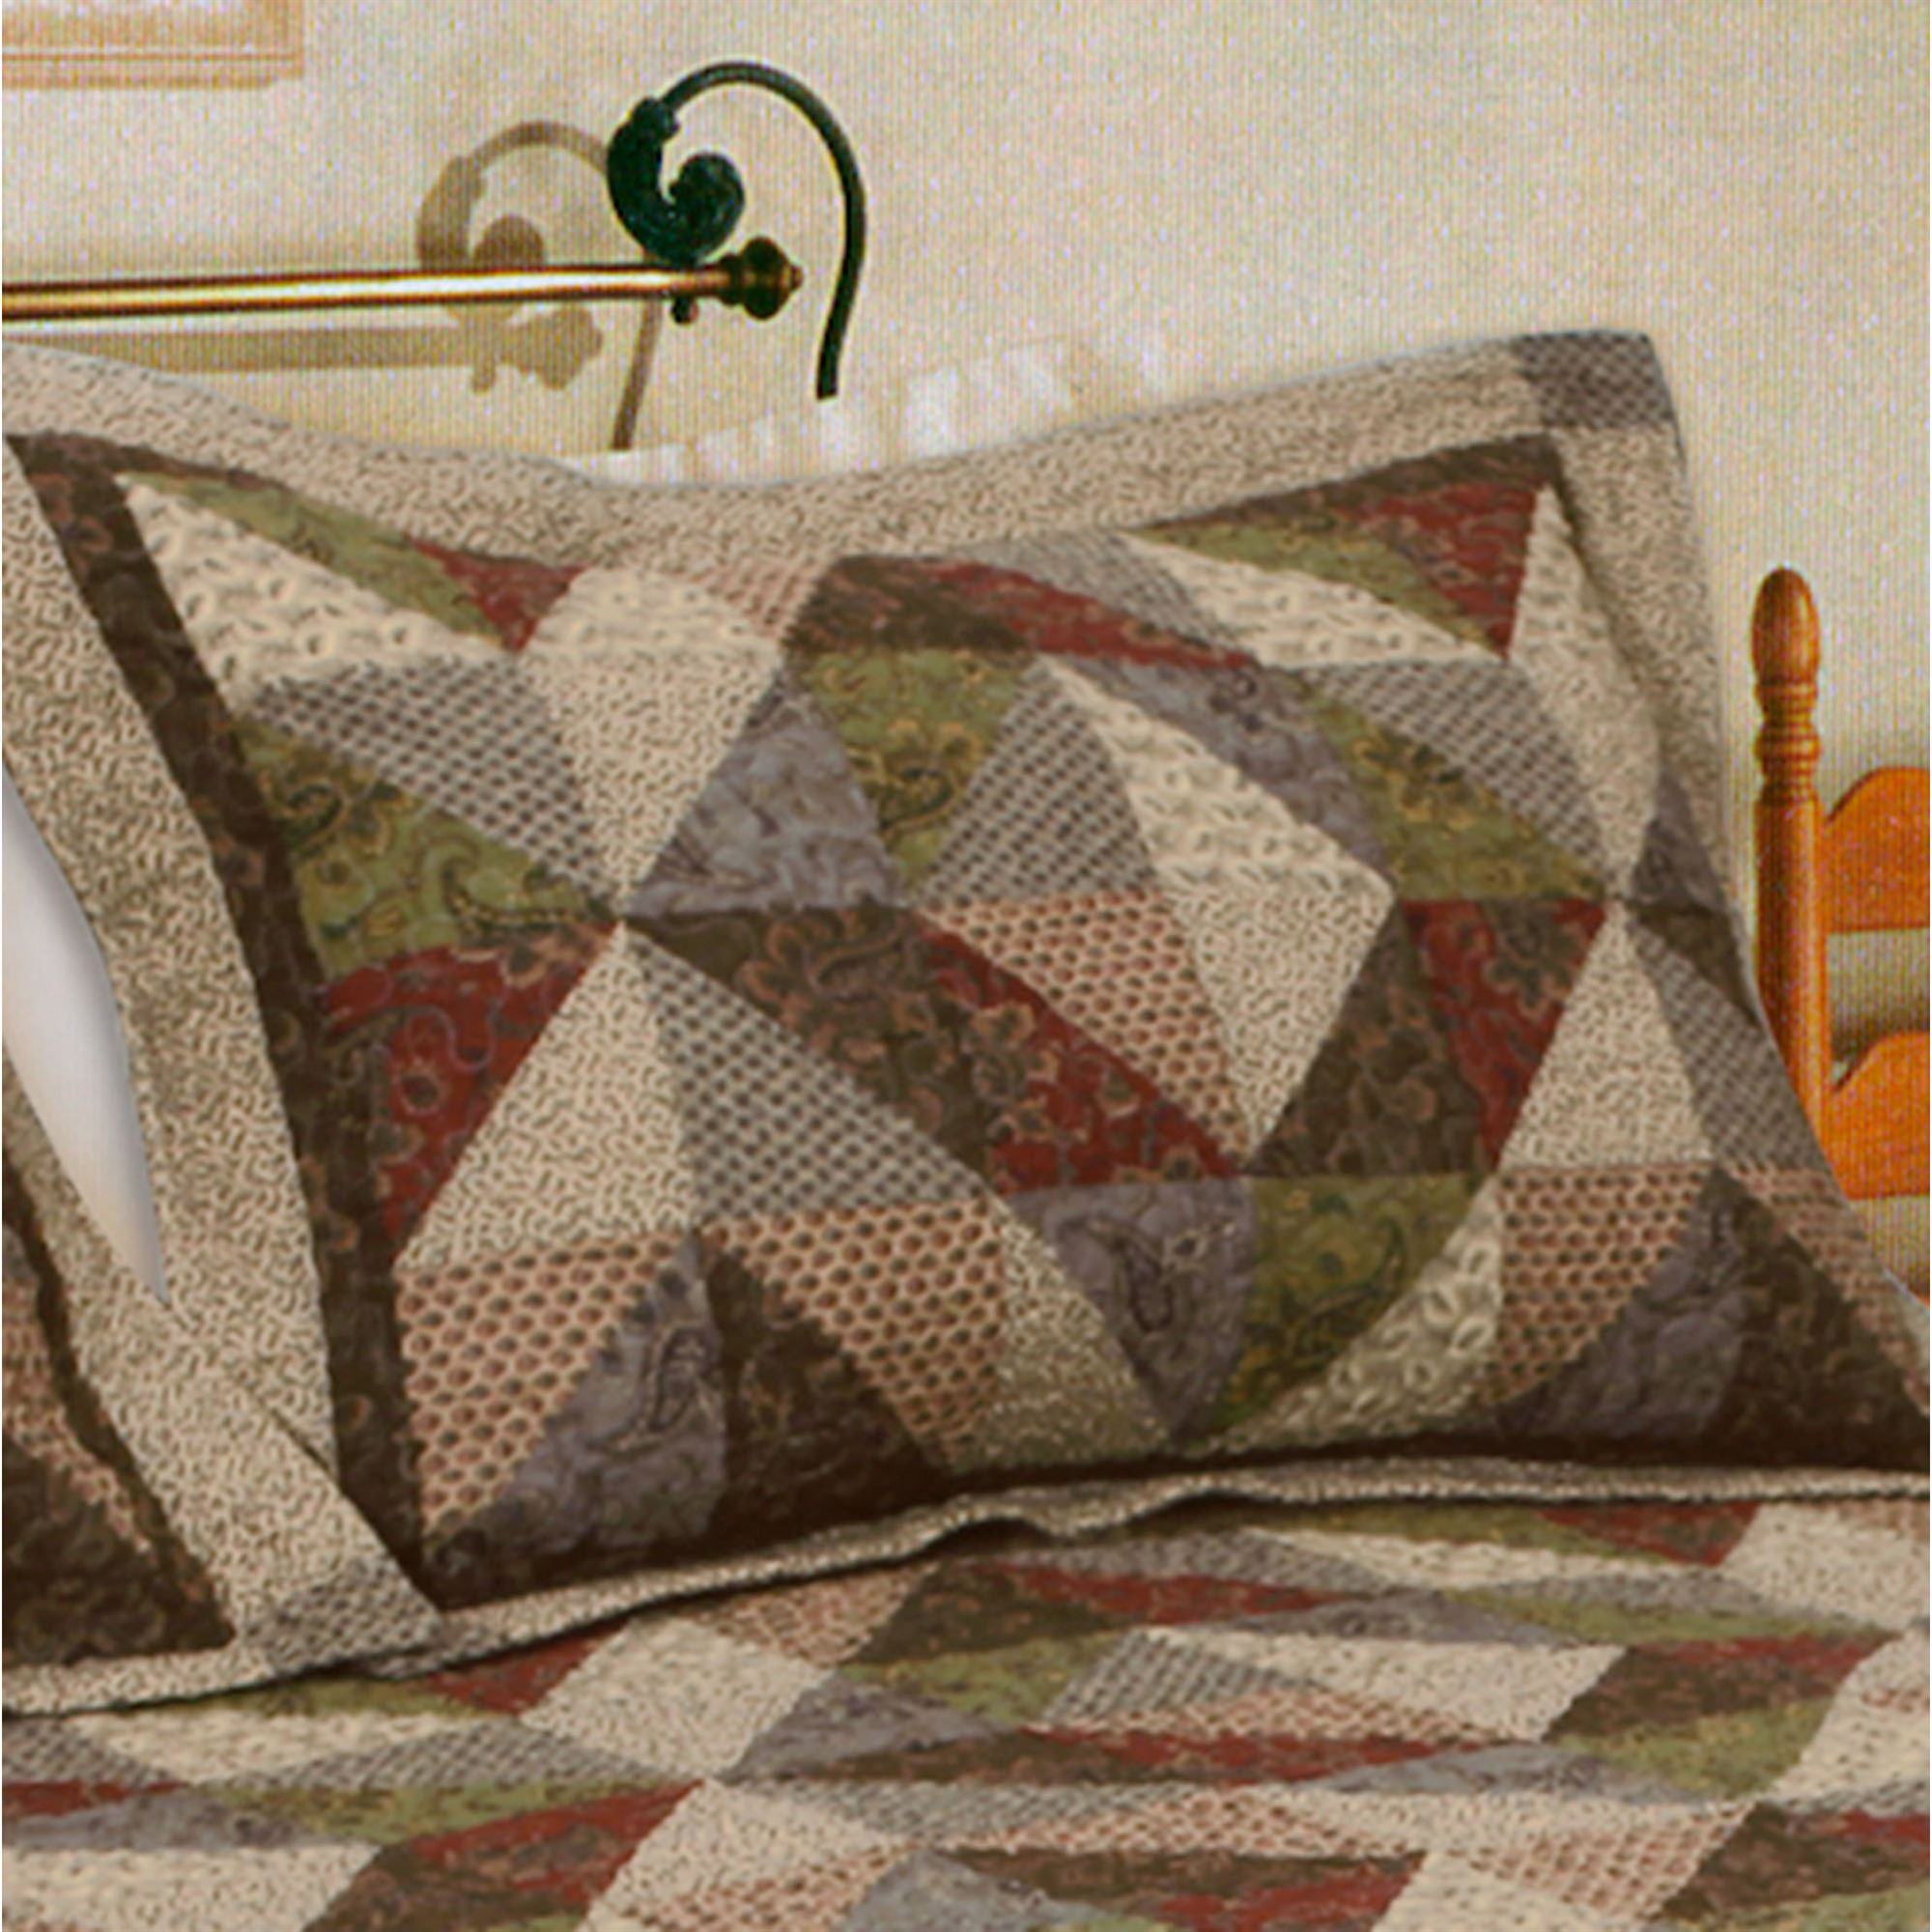 Country Cottage Cotton Patchwork Quilt Bedding : country cottage quilts - Adamdwight.com